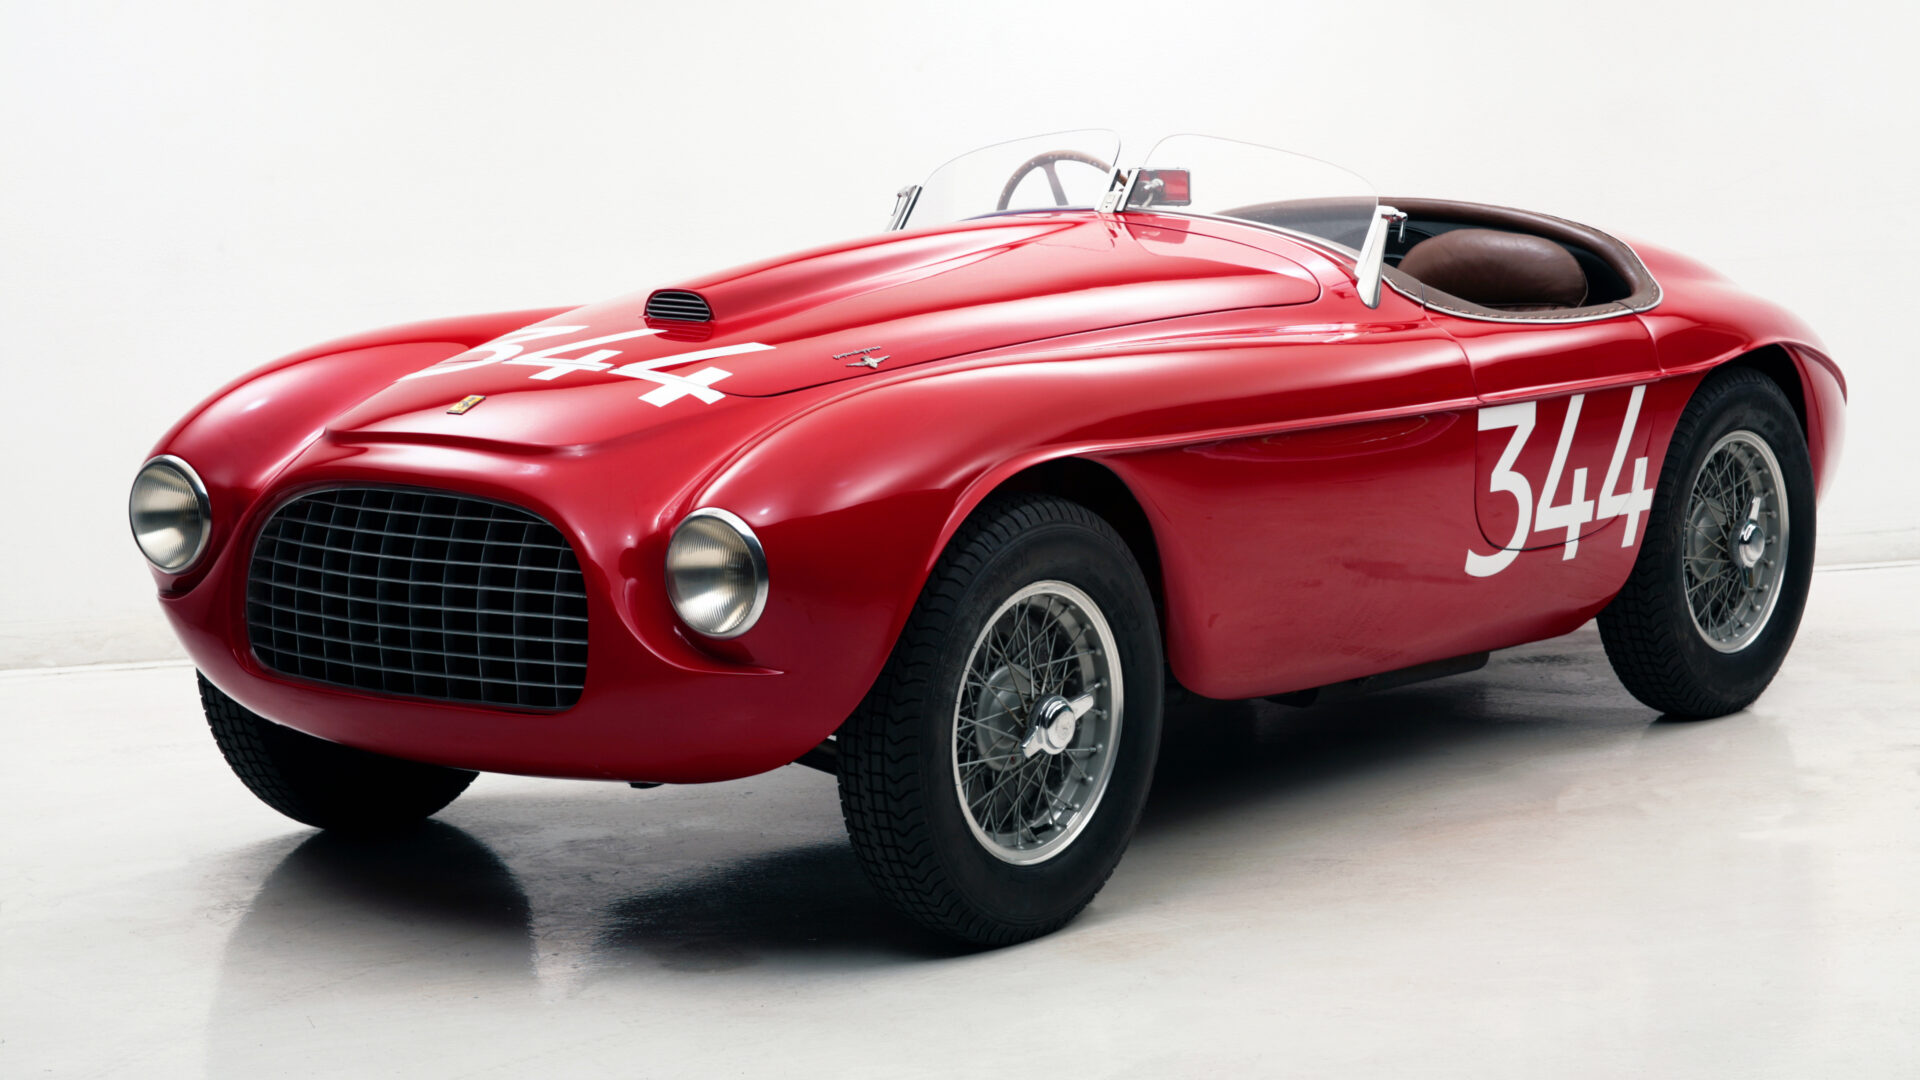 1949 Ferrari 16mm Touring Barchetta